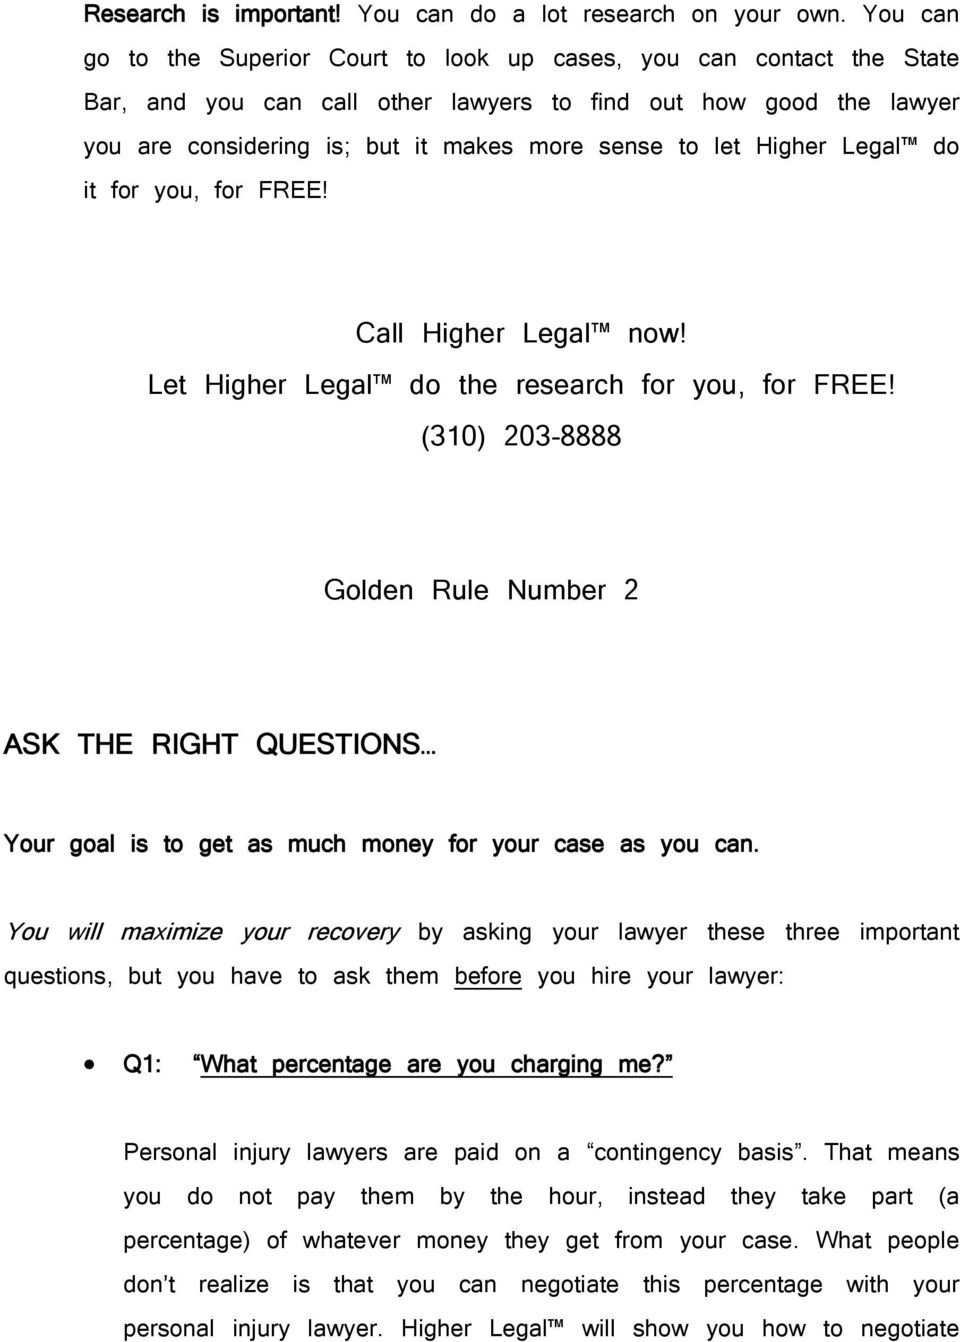 Higher Legal do it for you, for FREE! Let Higher Legal do the research for you, for FREE!